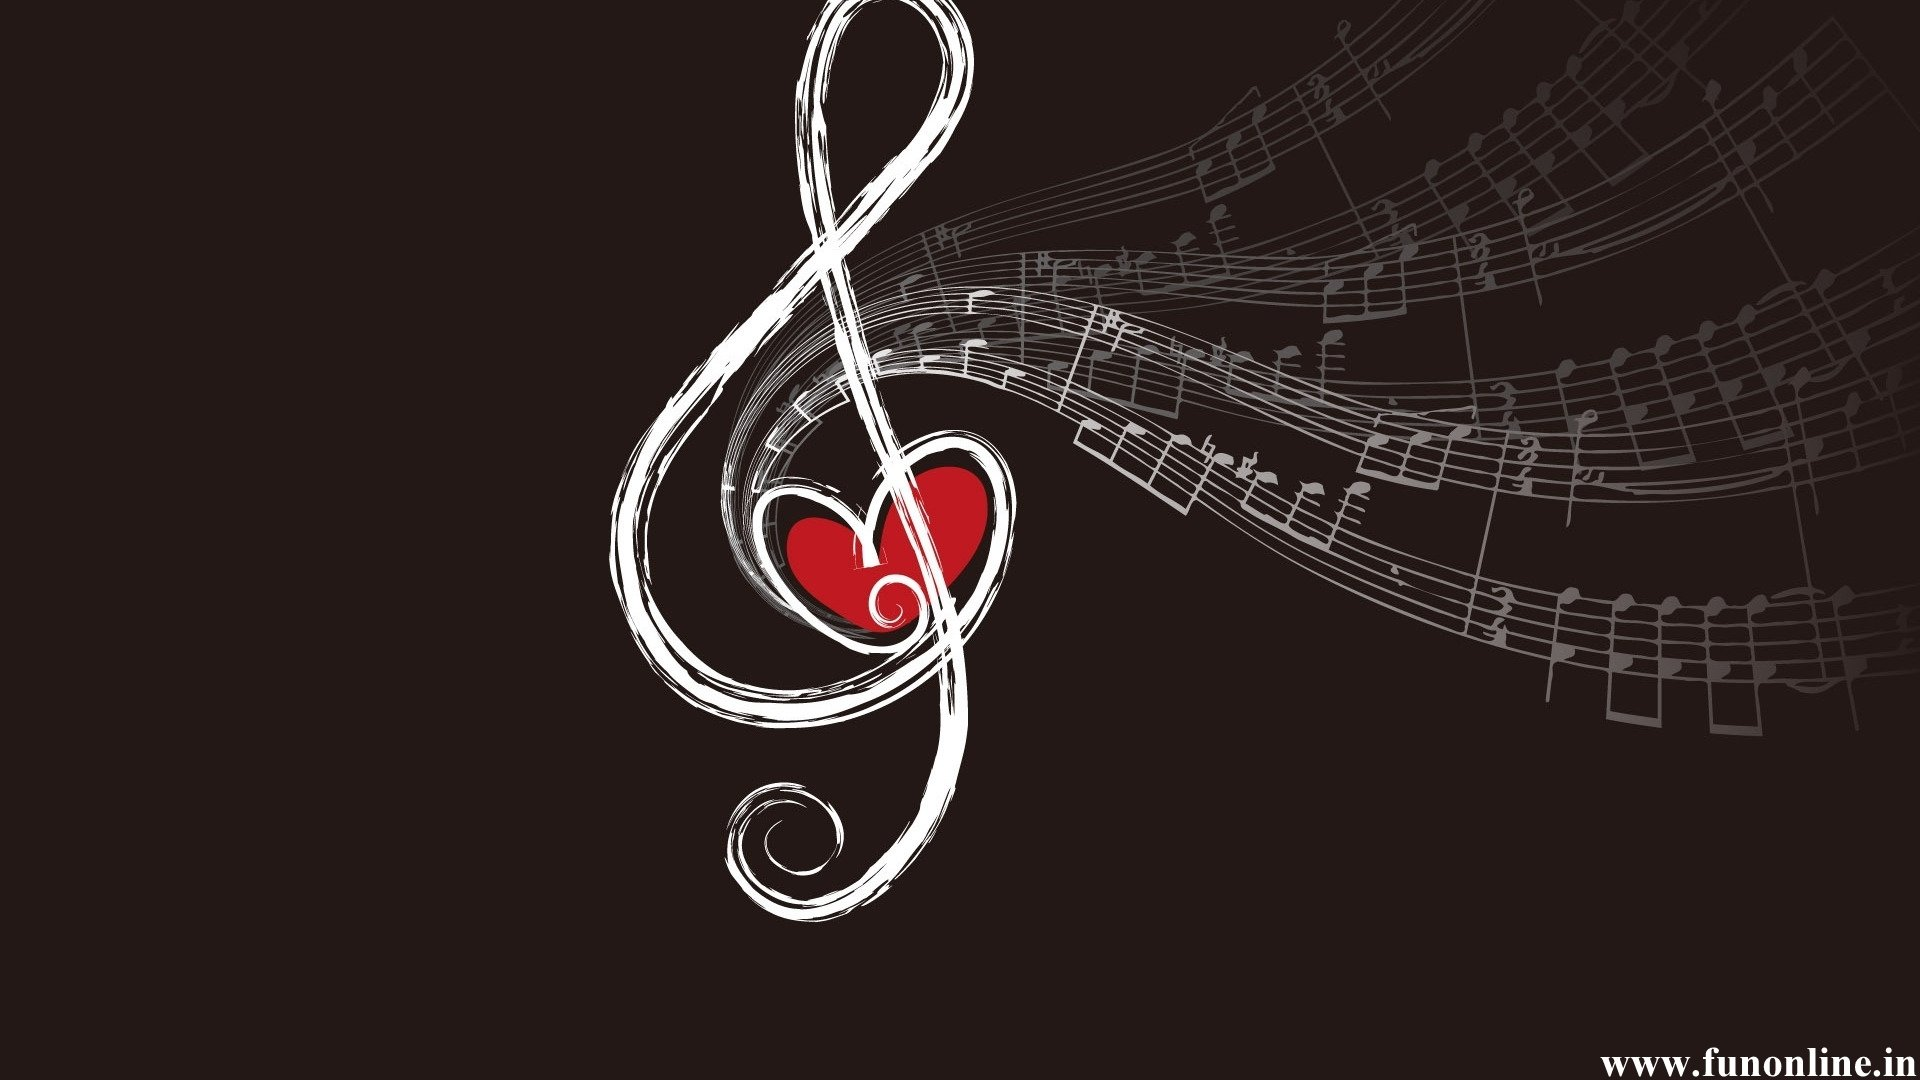 Wallpaper download music - Sweet Love Wallpapers Download Sweet Love Hd Wallpapers For Free